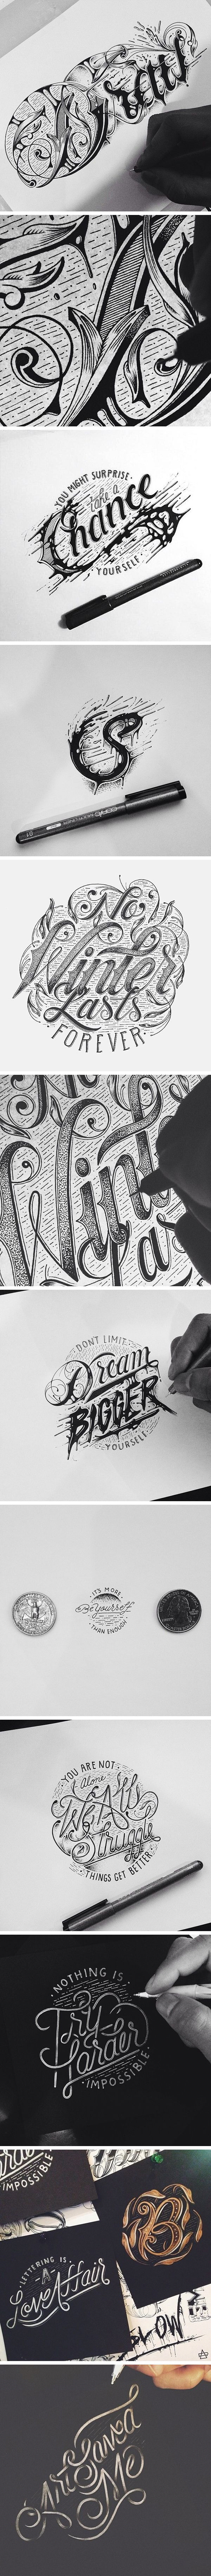 Hand Typography! I am currently trying to learn how to create unique typefaces in Adobe Illustrator. This is very inspiring.: